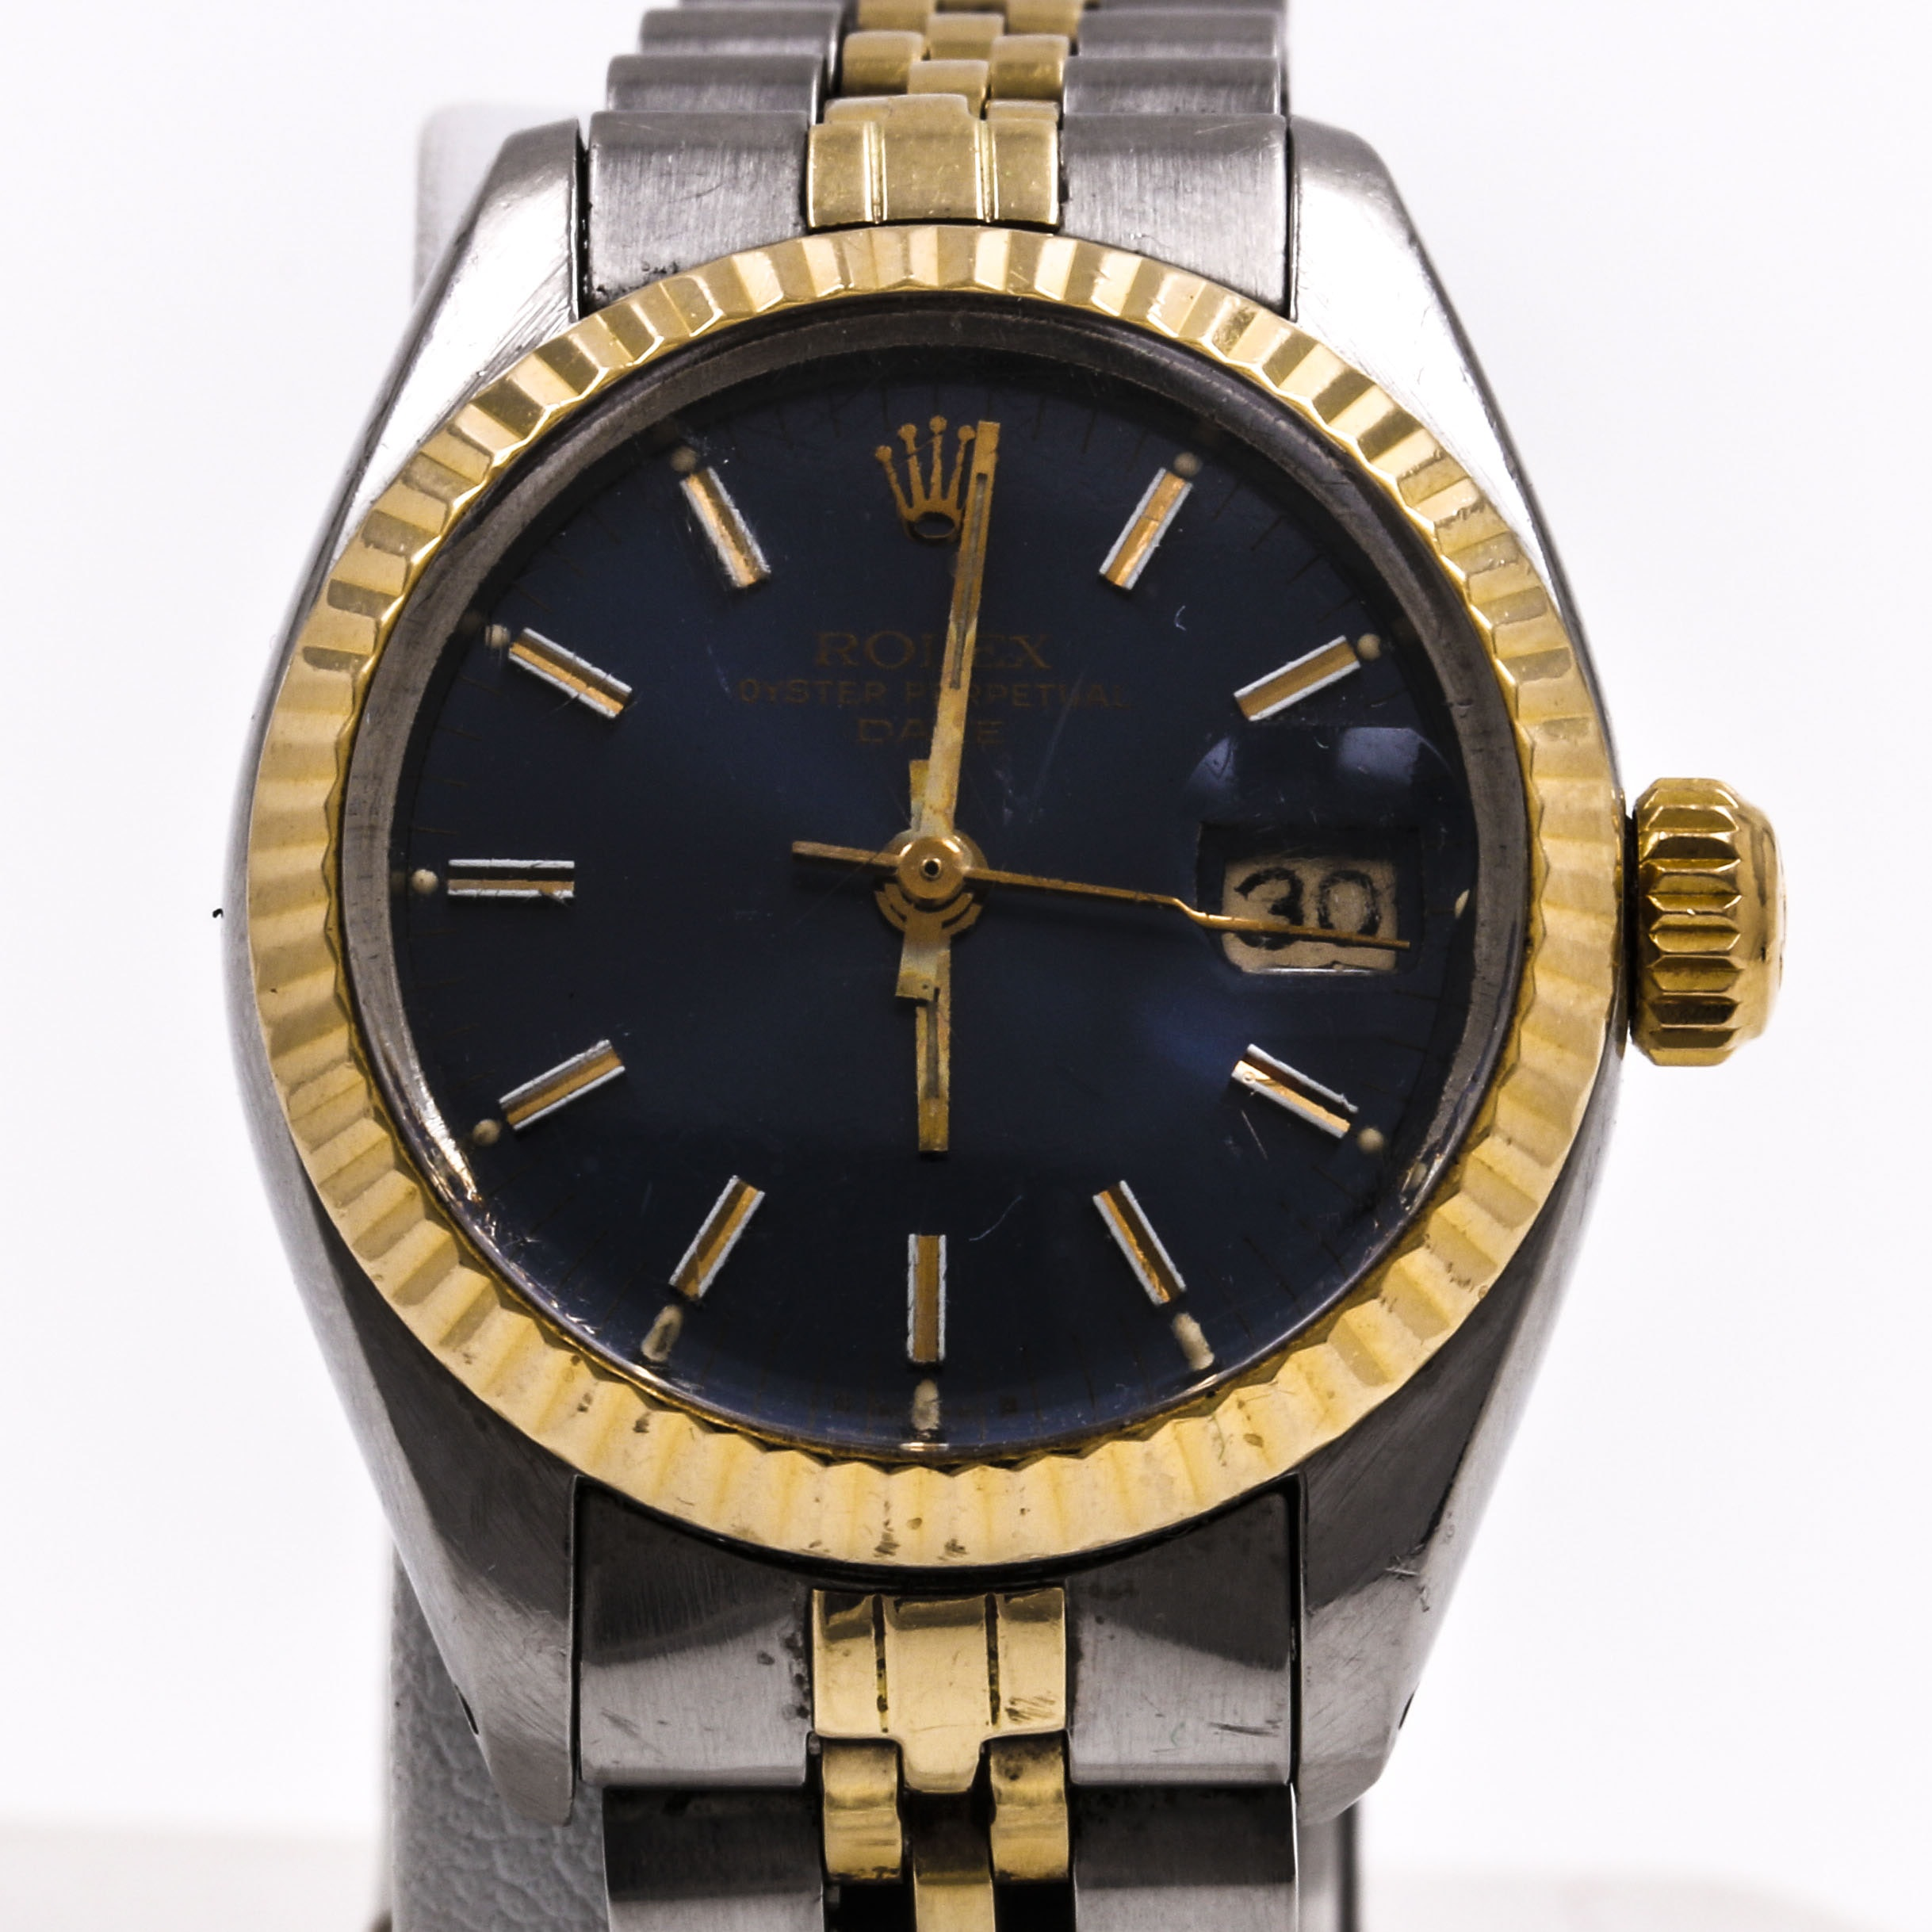 Vintage Rolex Oyster Perpetual Date 14K Yellow Gold and Stainless Steel Wristwatch